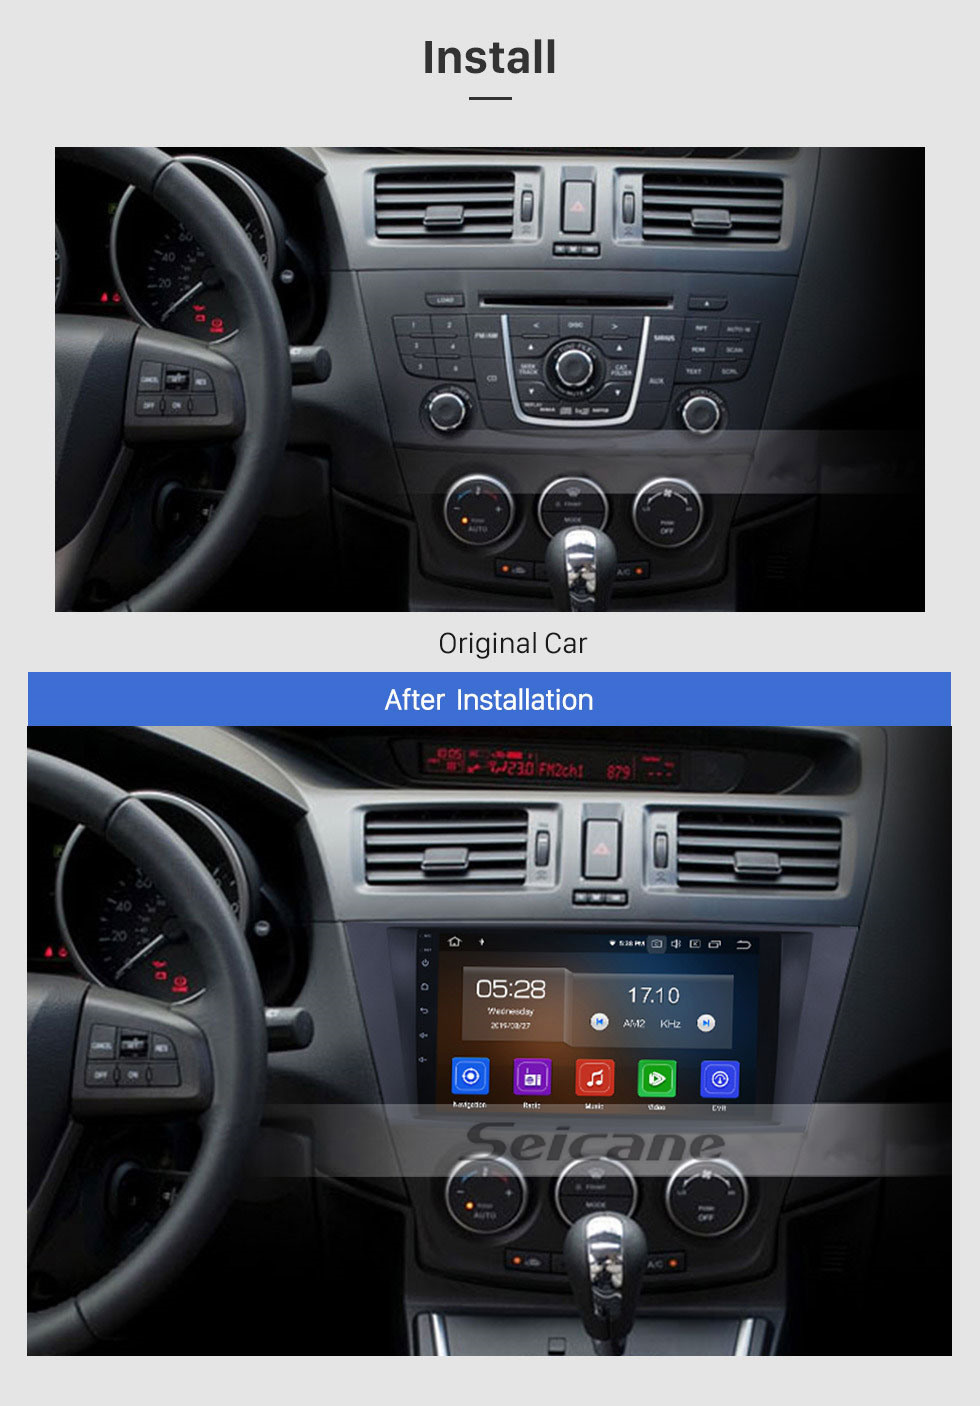 Seicane 9 inch For 2009 2010 2011 2012 Mazda 5 Android 10.0 HD Touchscreen GPS Navigation System Car Radio for Bluetooth USB WIFI OBD II DVR Aux Steering Wheel Control